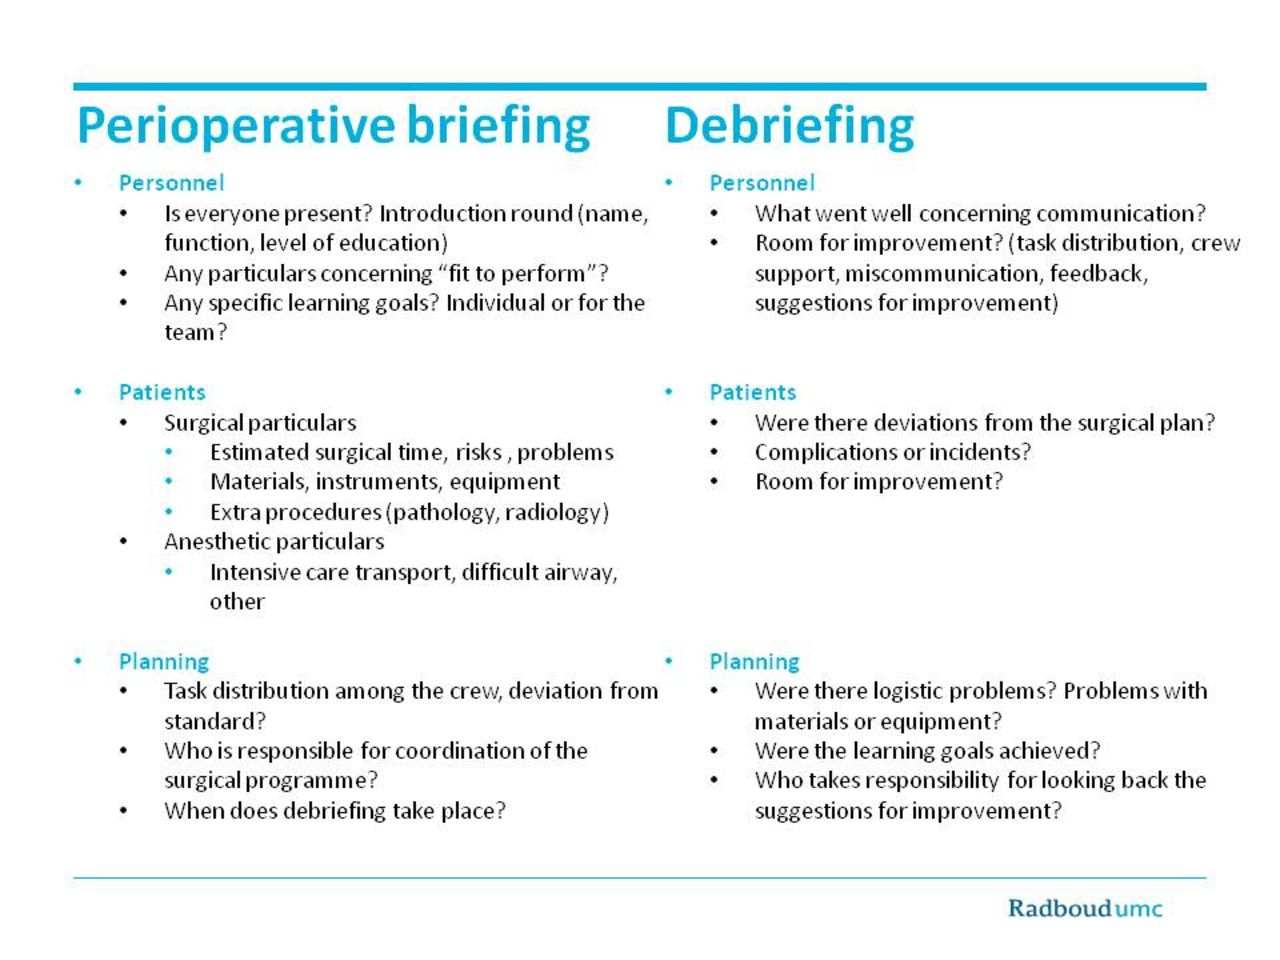 Effects Of Perioperative Briefing And Debriefing On